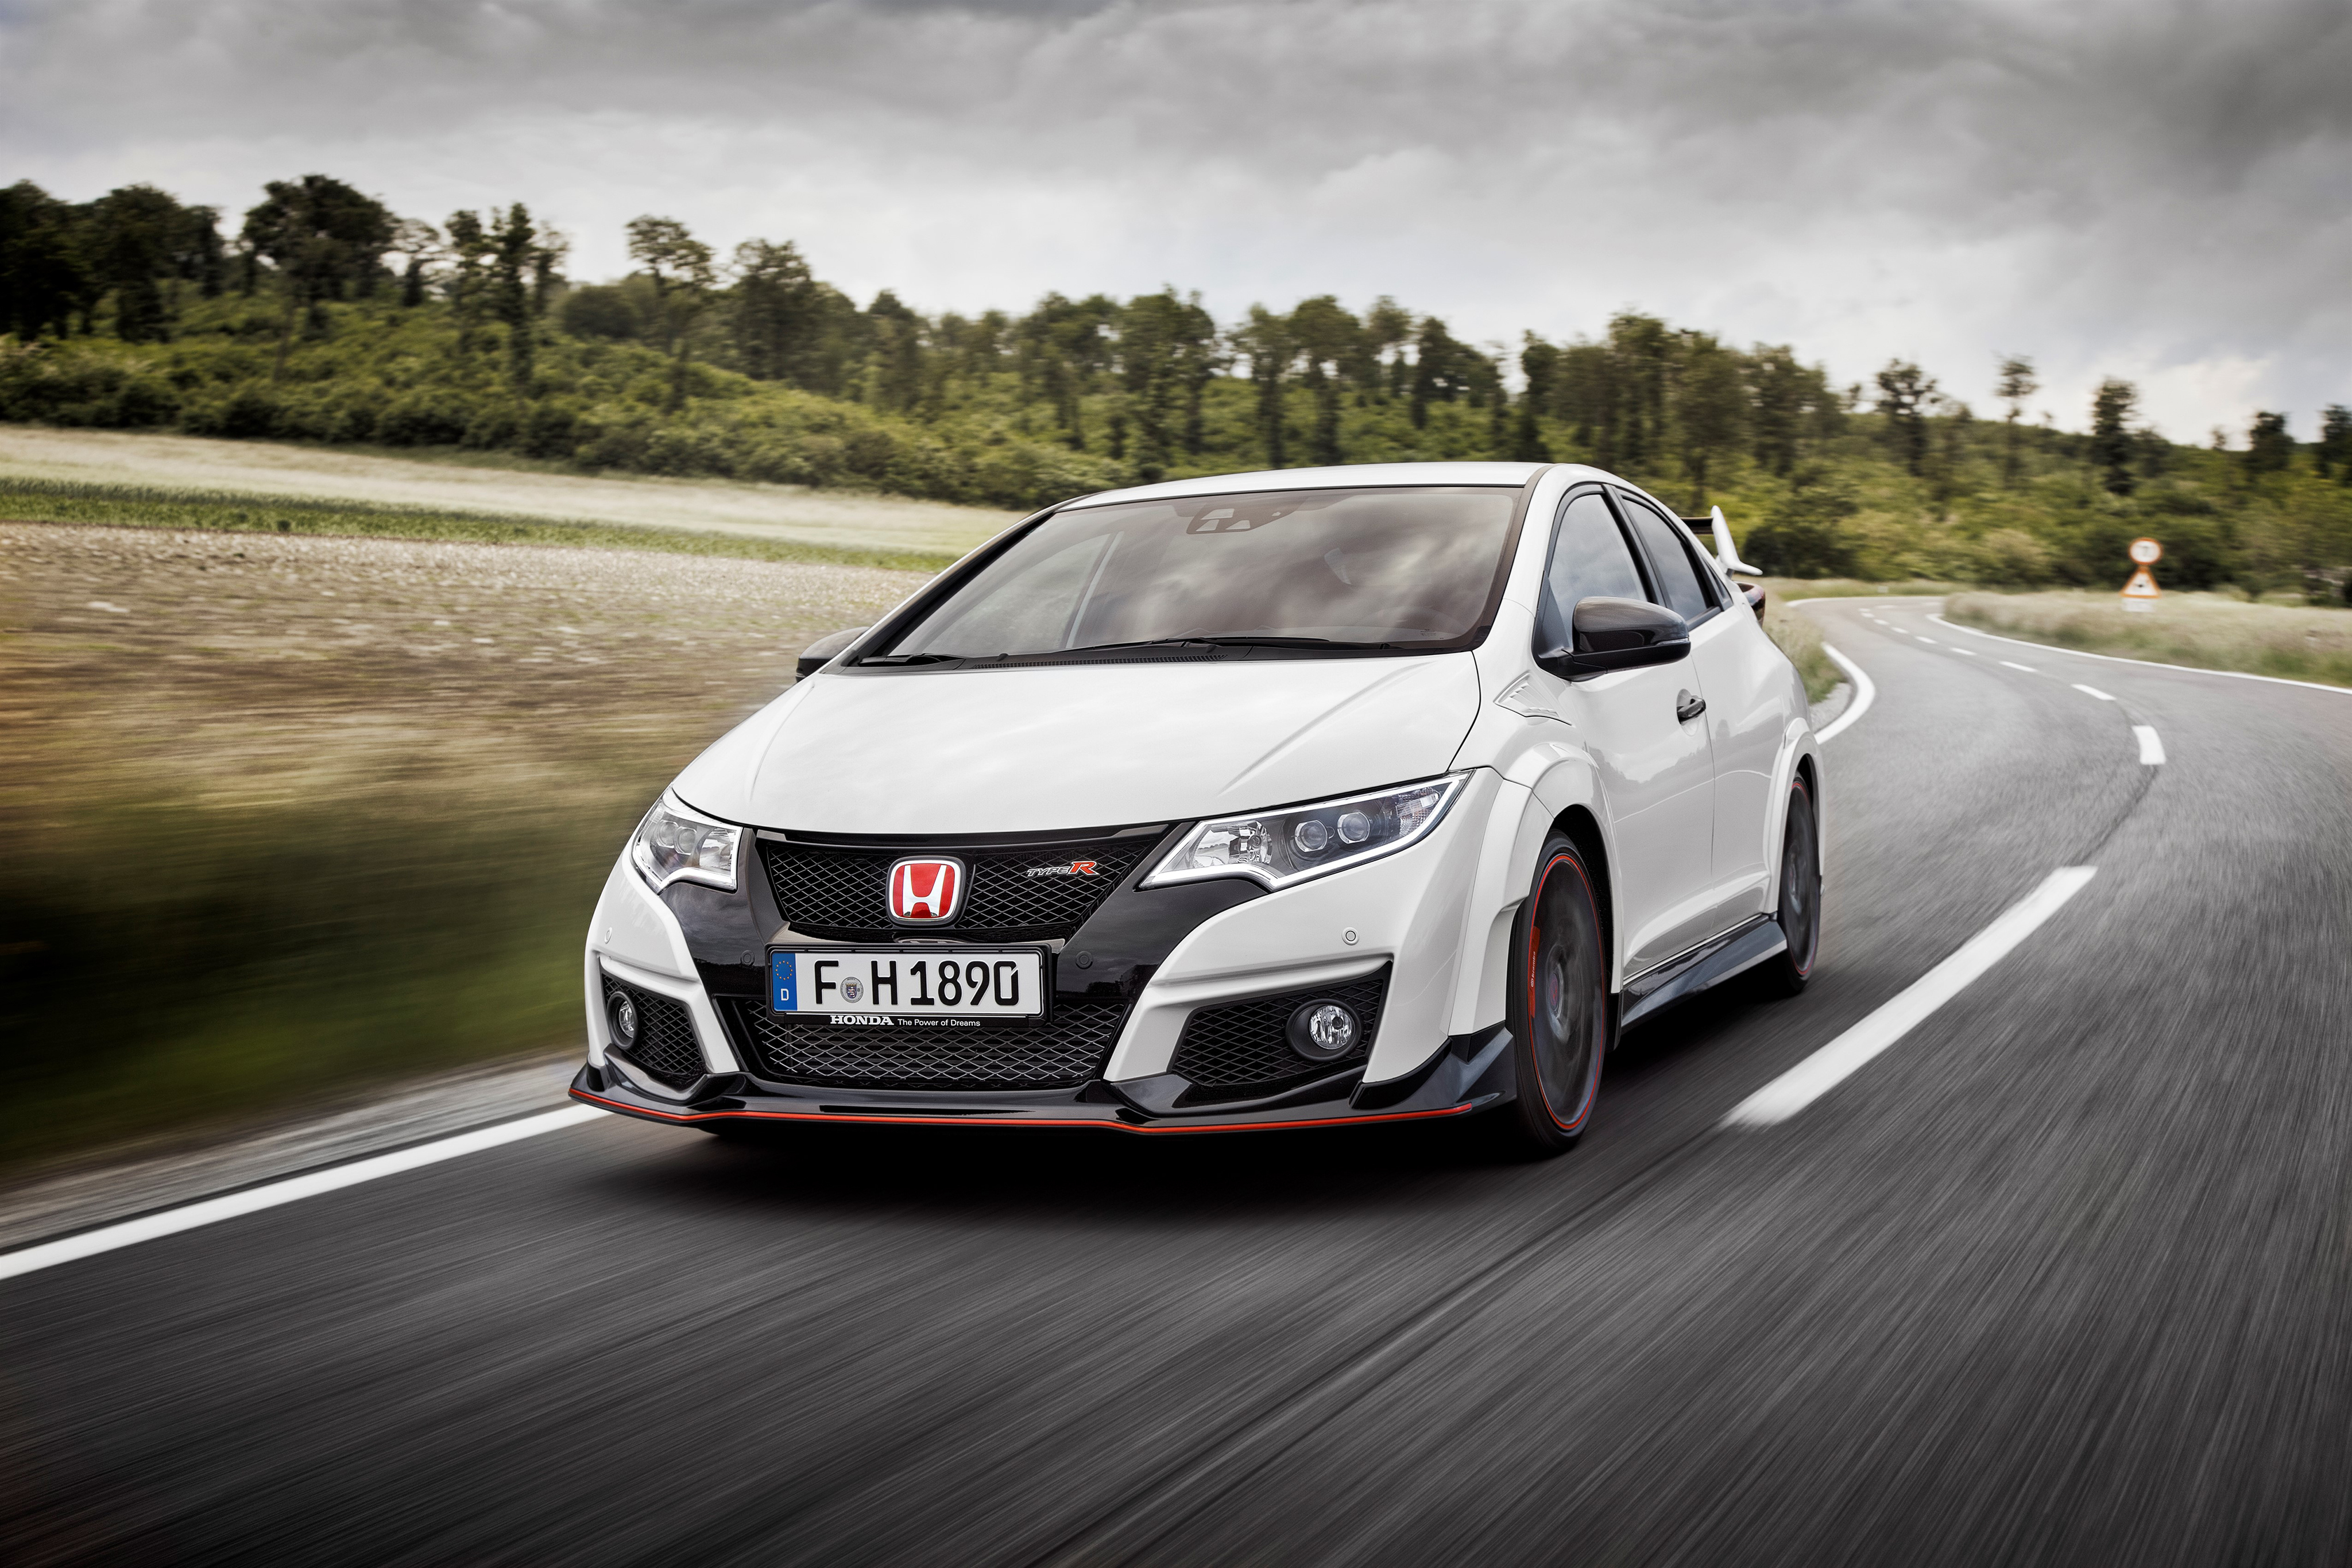 4 Honda Civic Type R HD Wallpapers Backgrounds 4096x2731